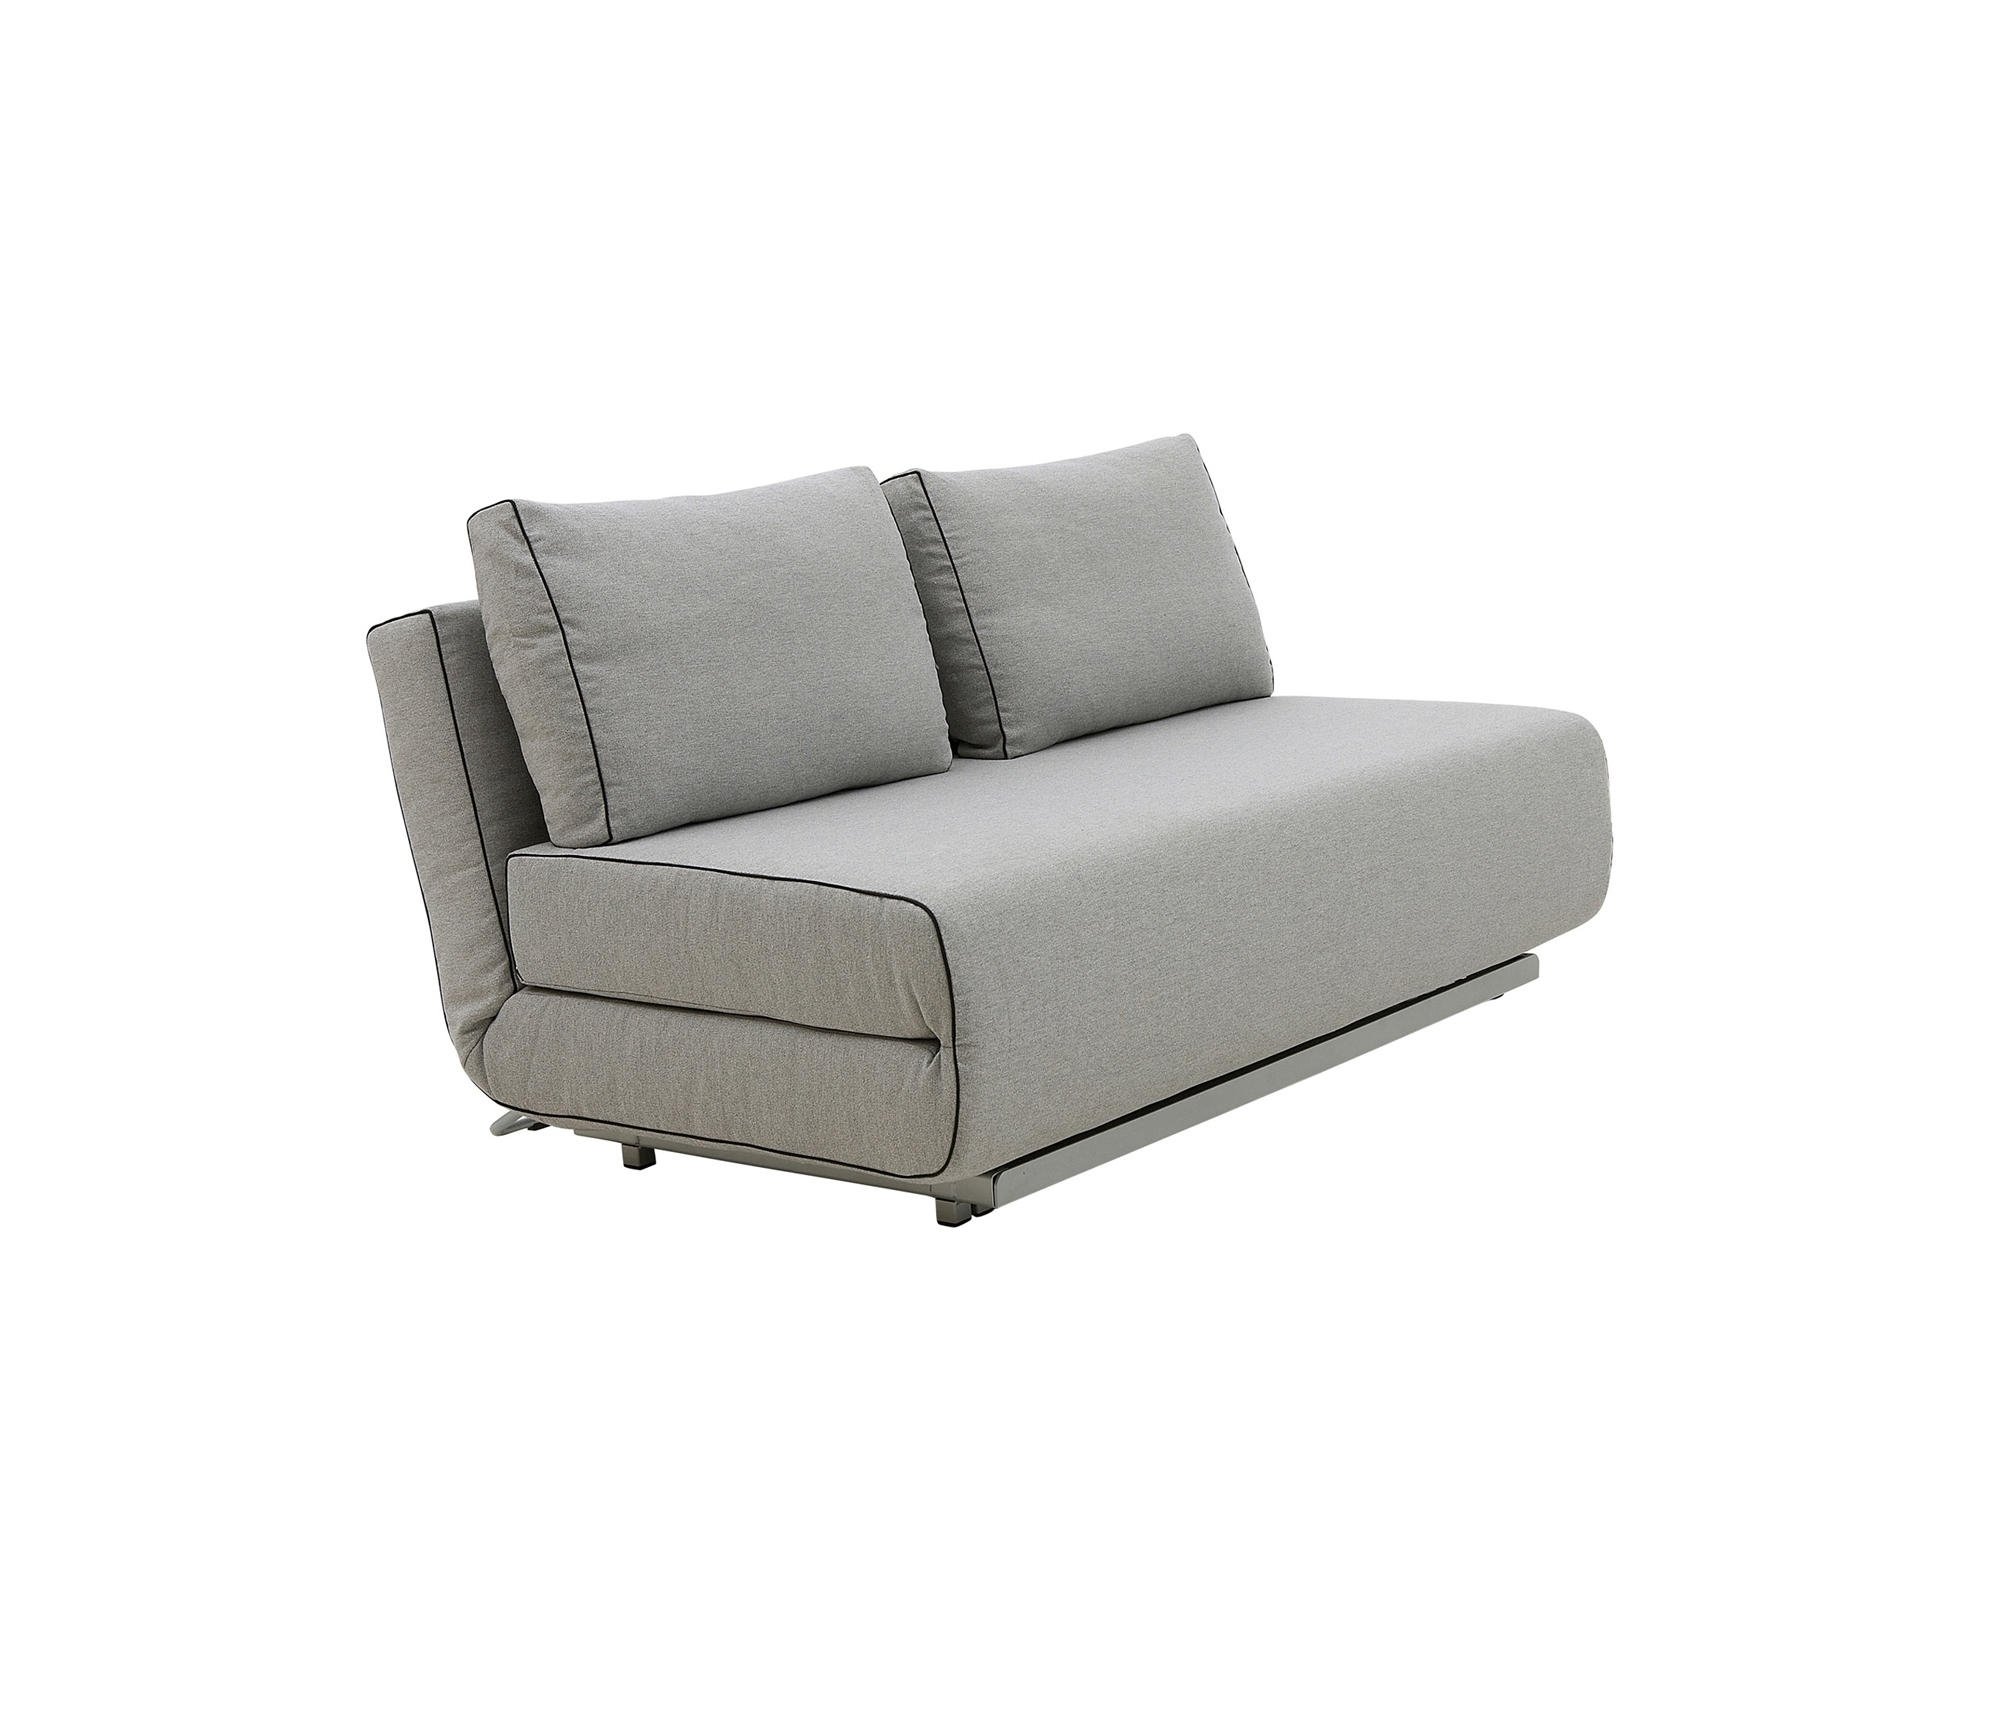 Architonic Intended For City Sofa Beds (View 5 of 20)